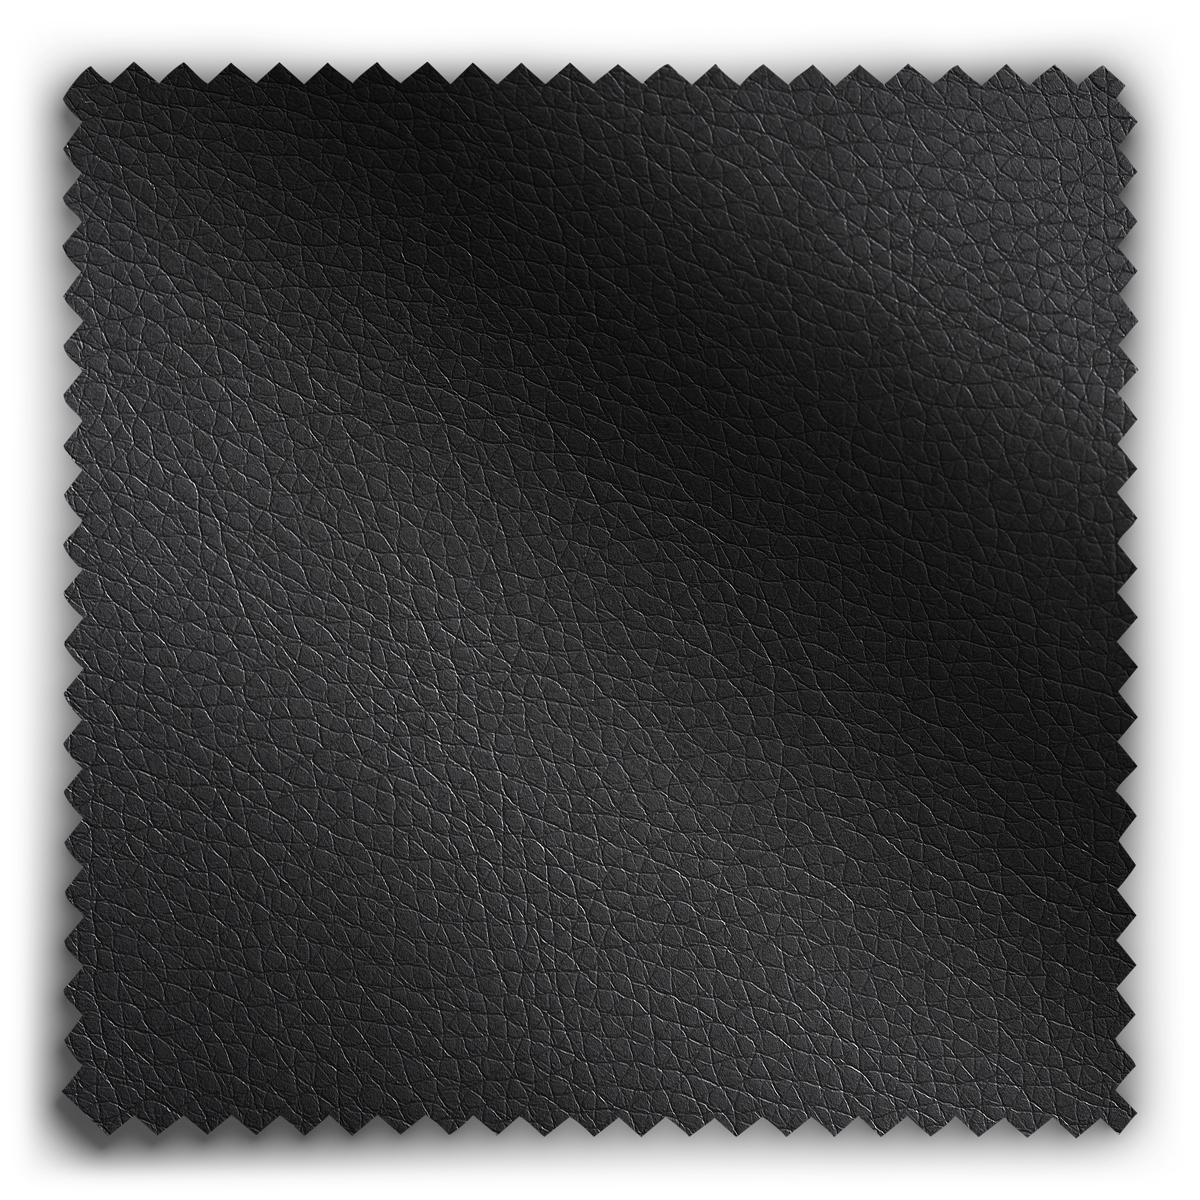 Image of Charcoal Leather fabric